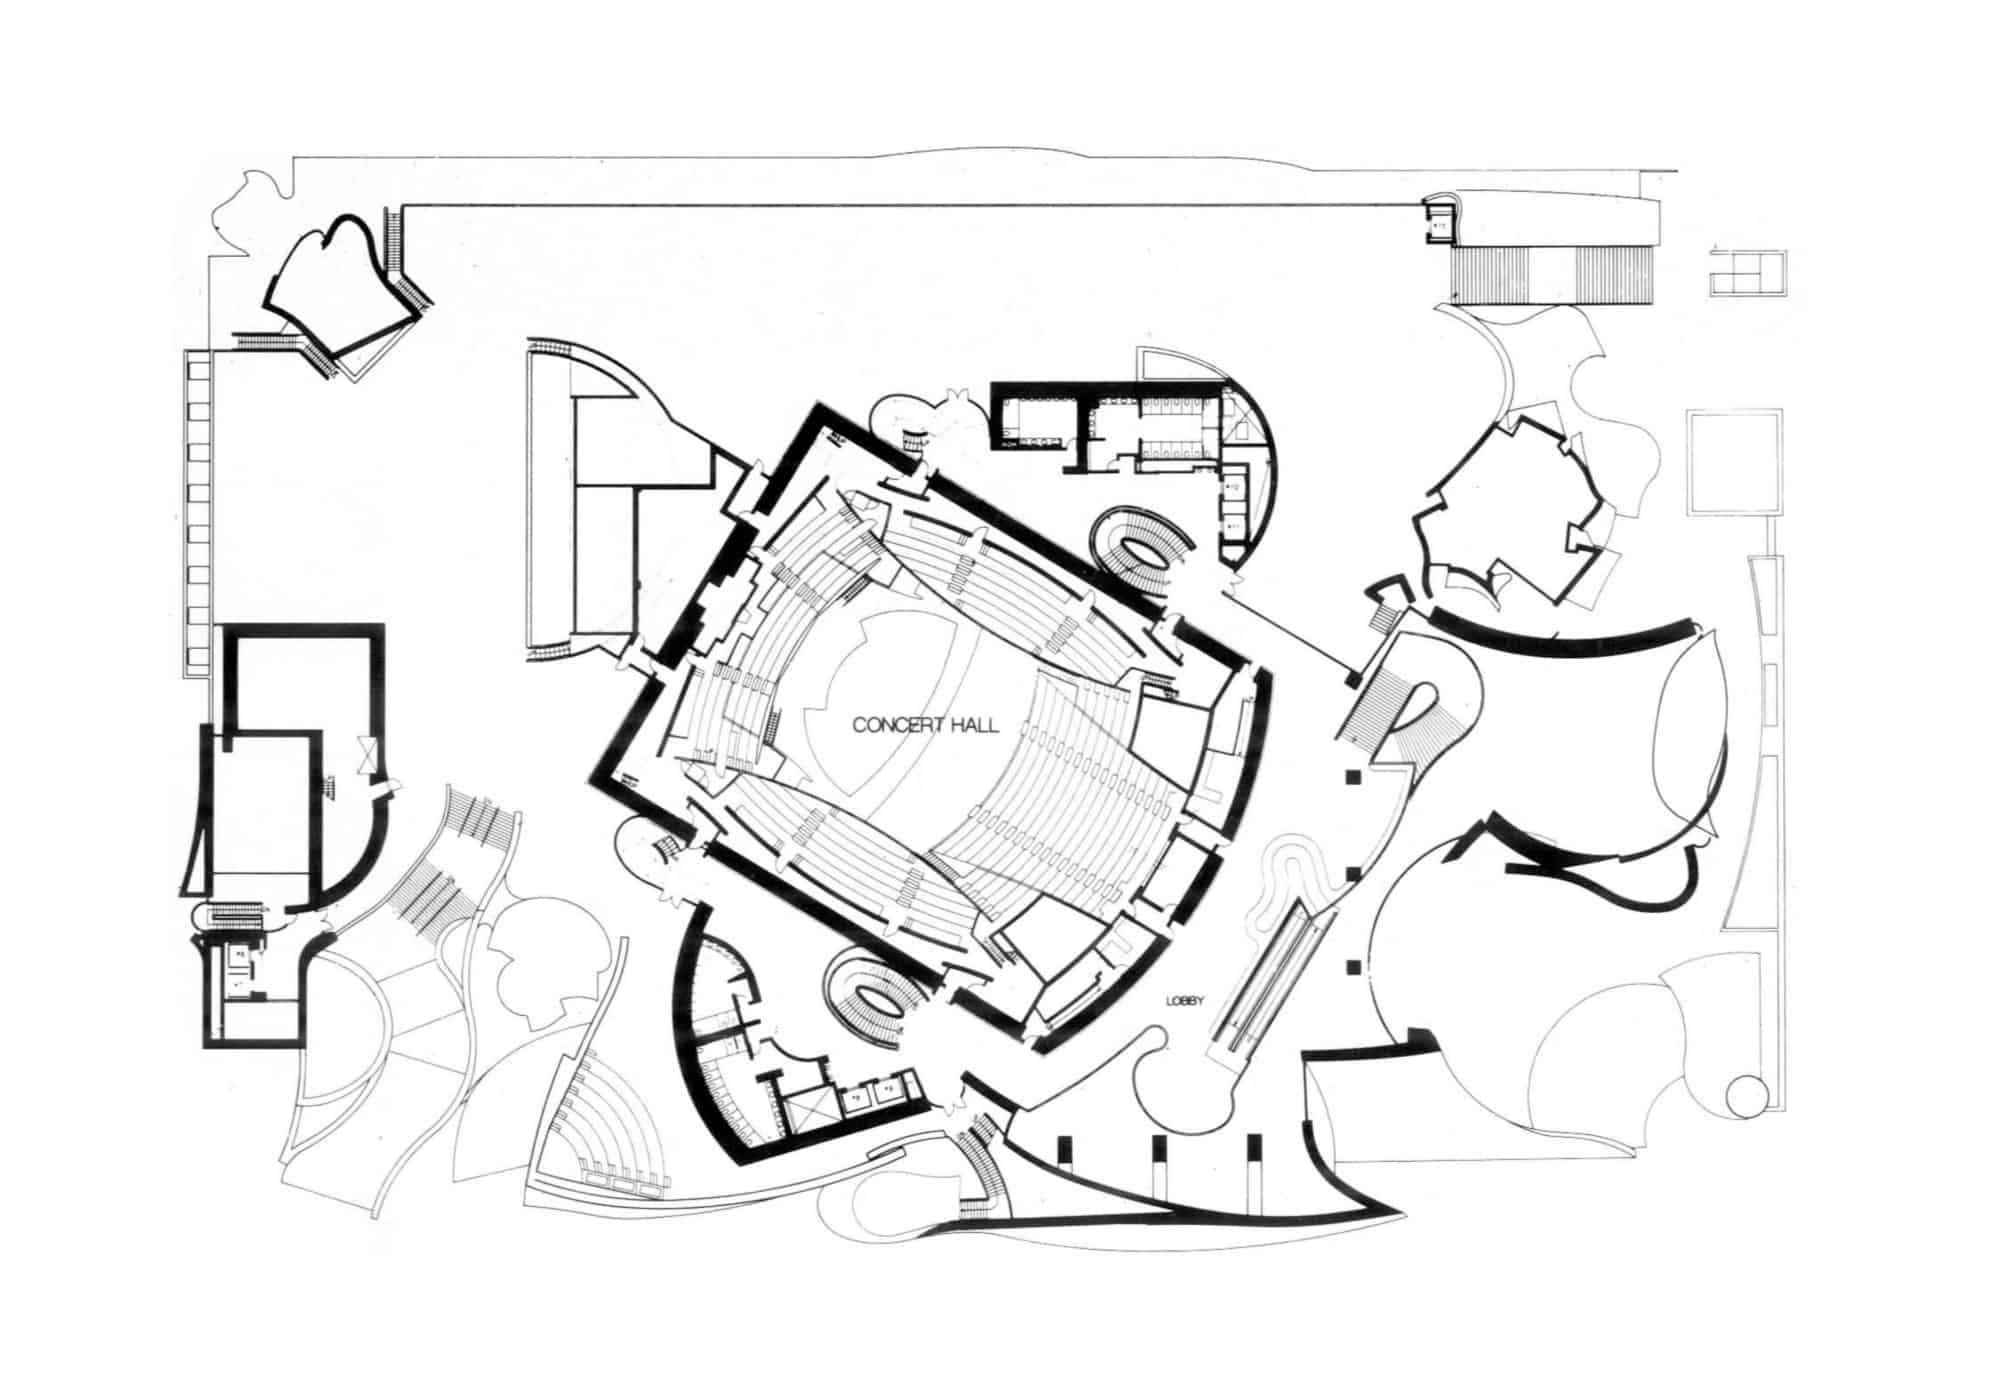 Coffee Shop Floor Plan Layout as well Oscar Niemeyer Architetto besides M A S T E R S Oscar Niemeyer as well Diego Rivera further 16031475. on oscar niemeyer drawings